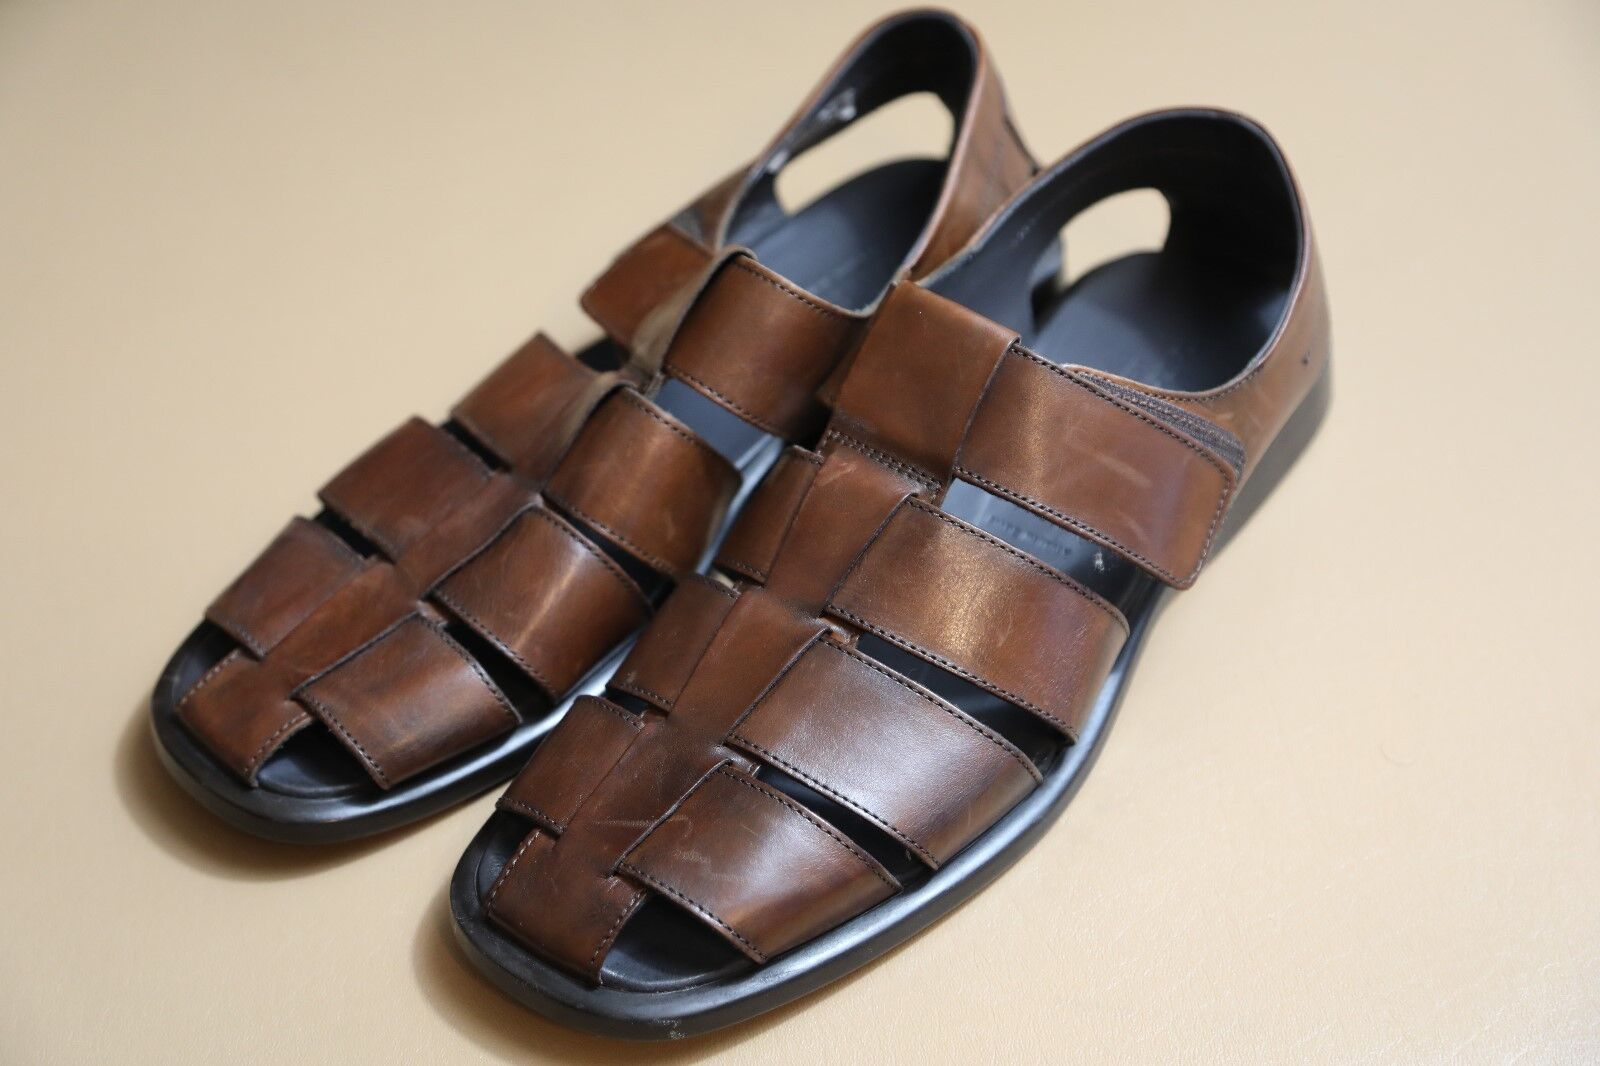 To Boot New York Barbados Fisher Leather Sandals Size